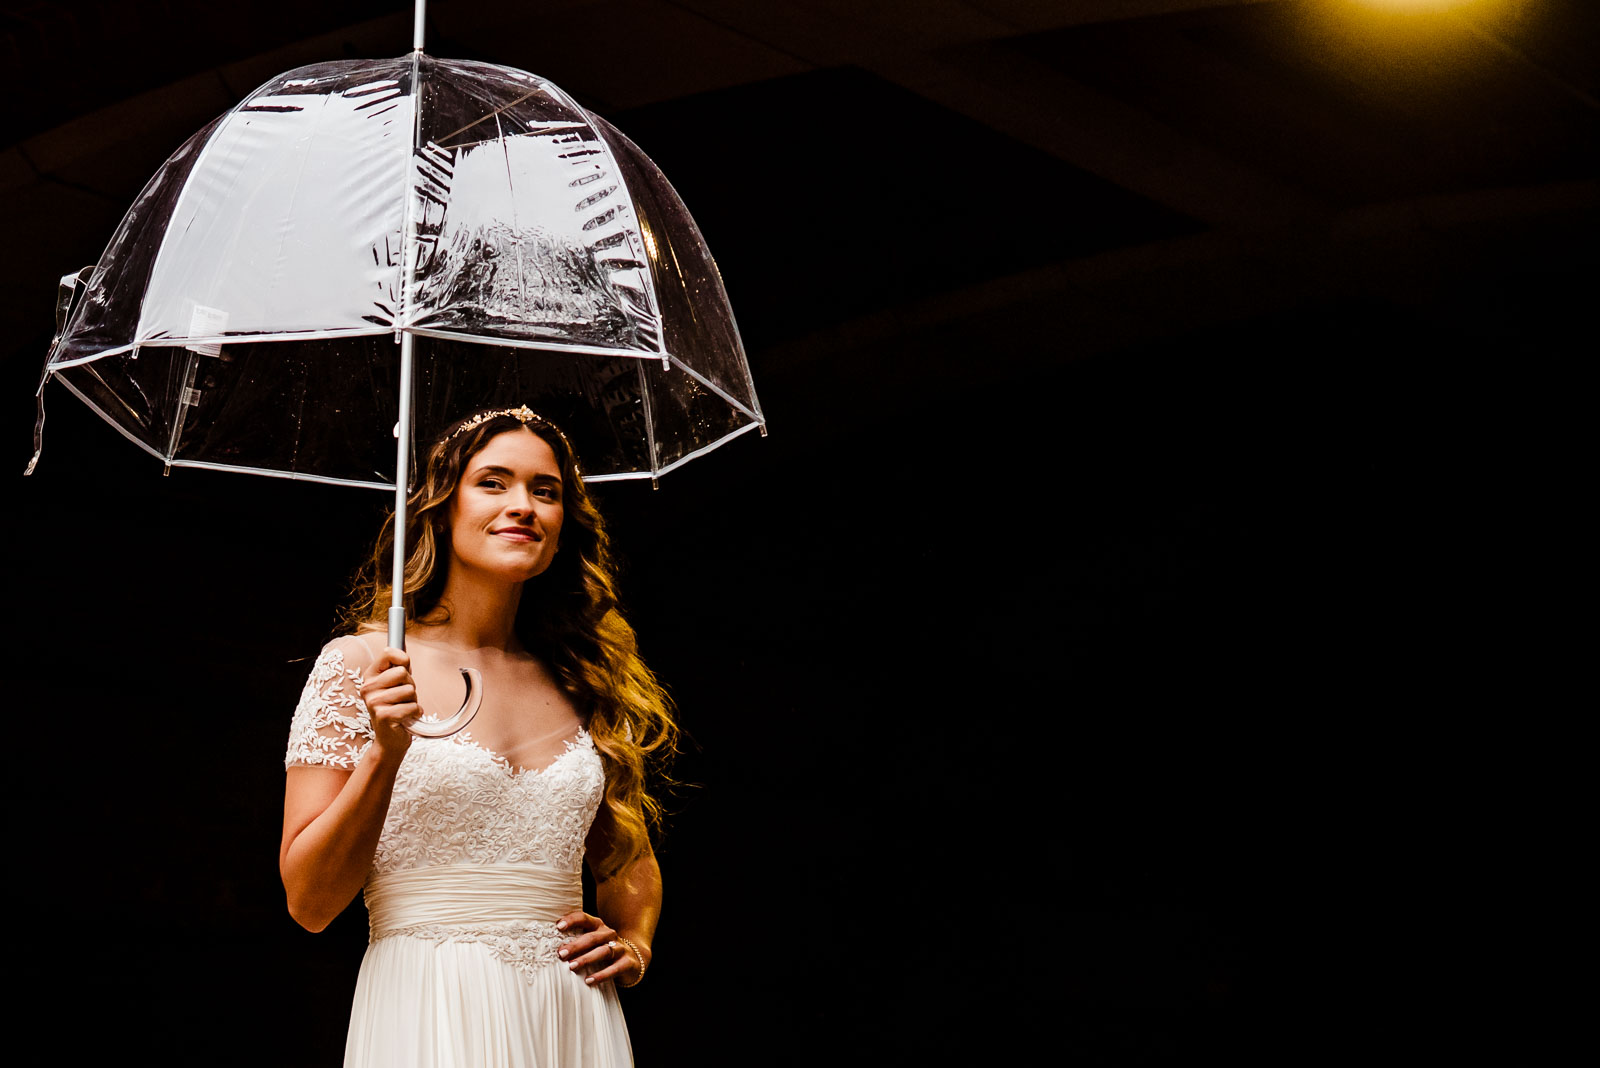 Bride portrait with umbrella